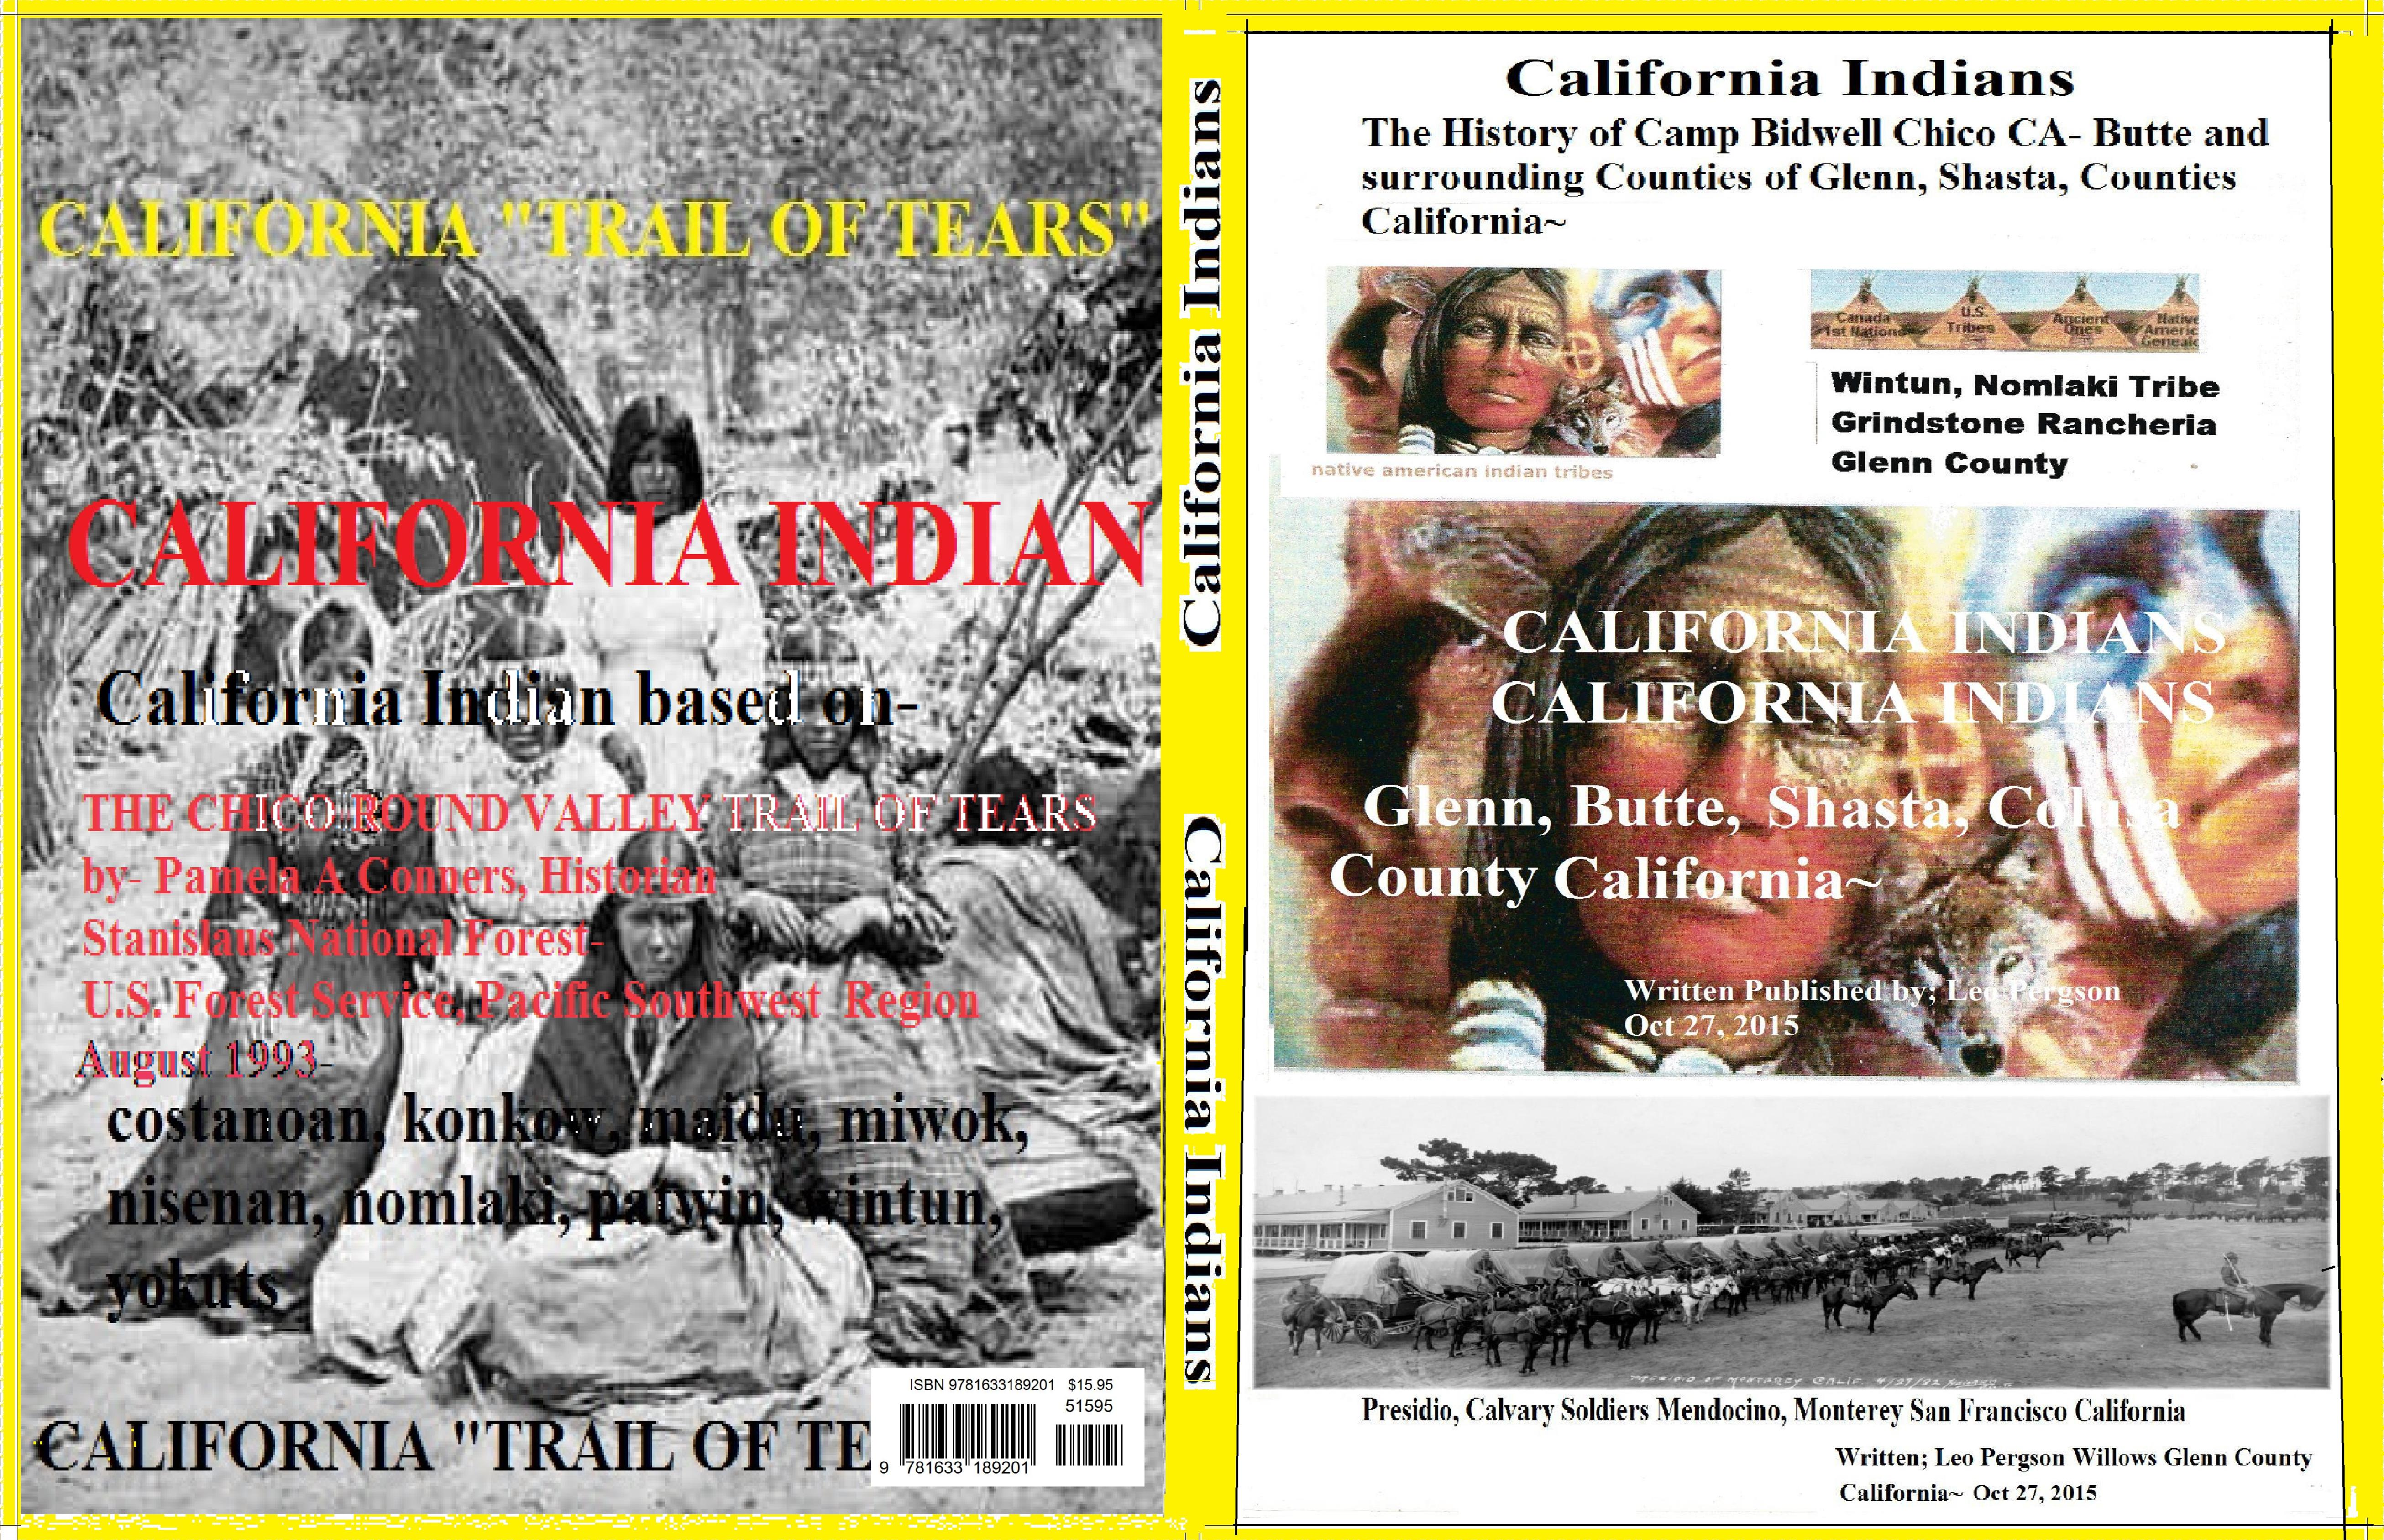 California Indian 1848 Hildalgo Treaty-Part II- cover image